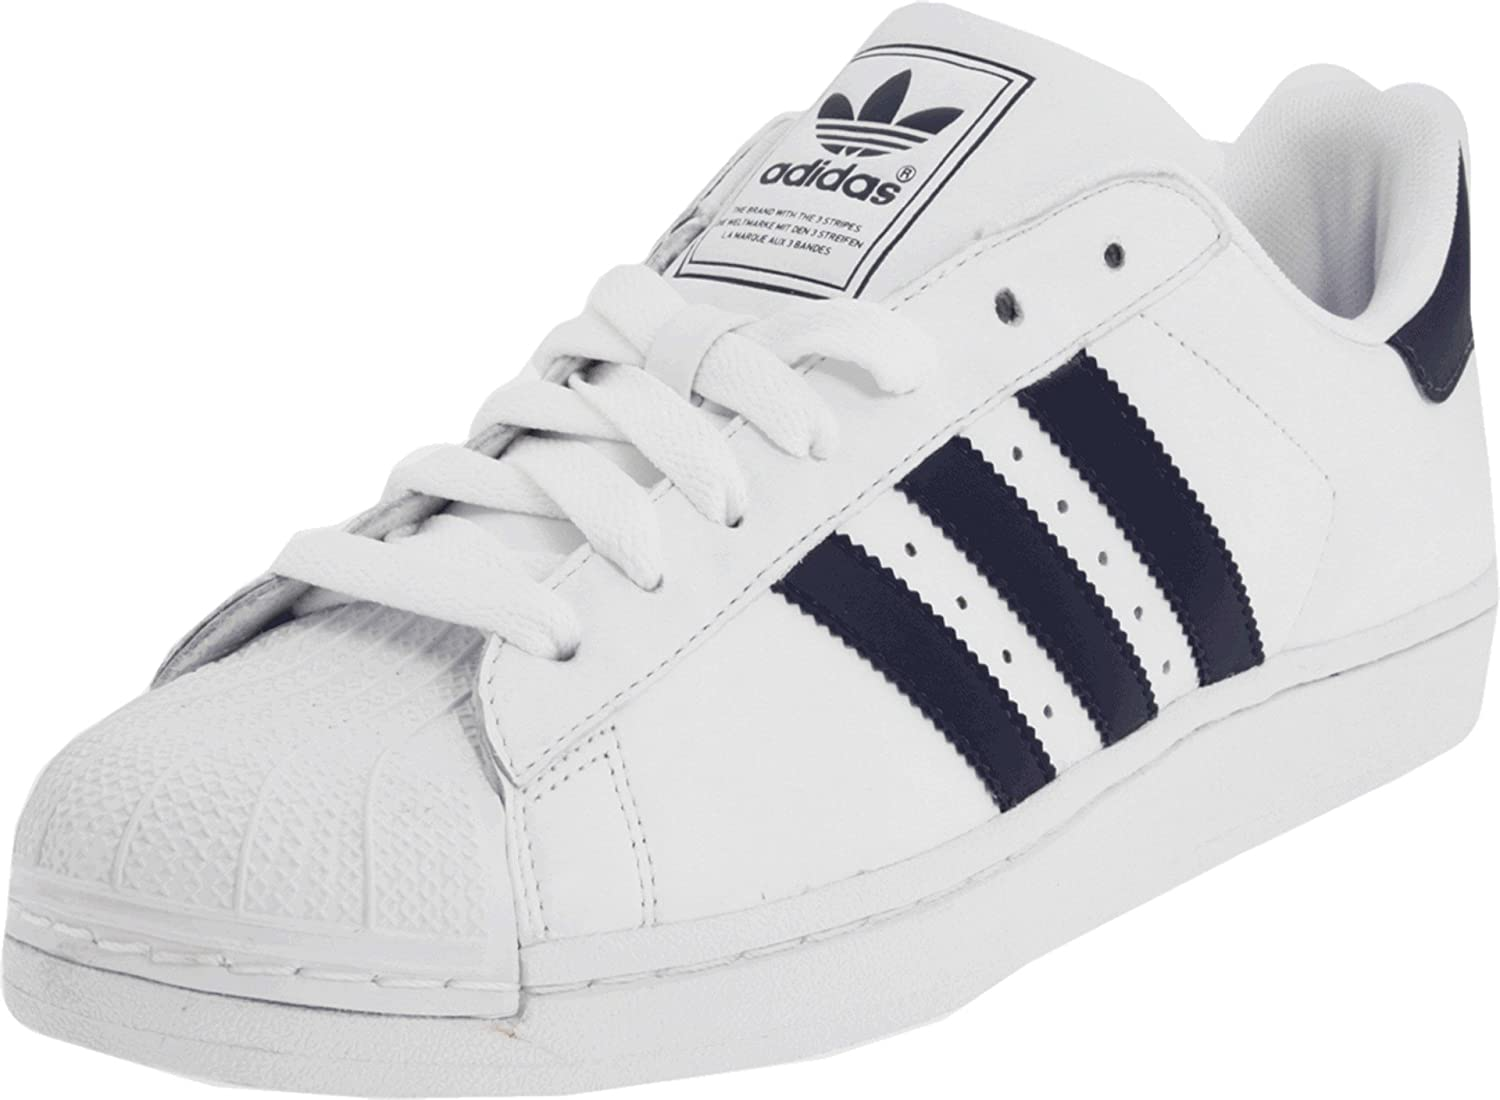 Adidas Vegan Chaussures Adidas Vegan Chaussures Chaussures 53ARjLq4